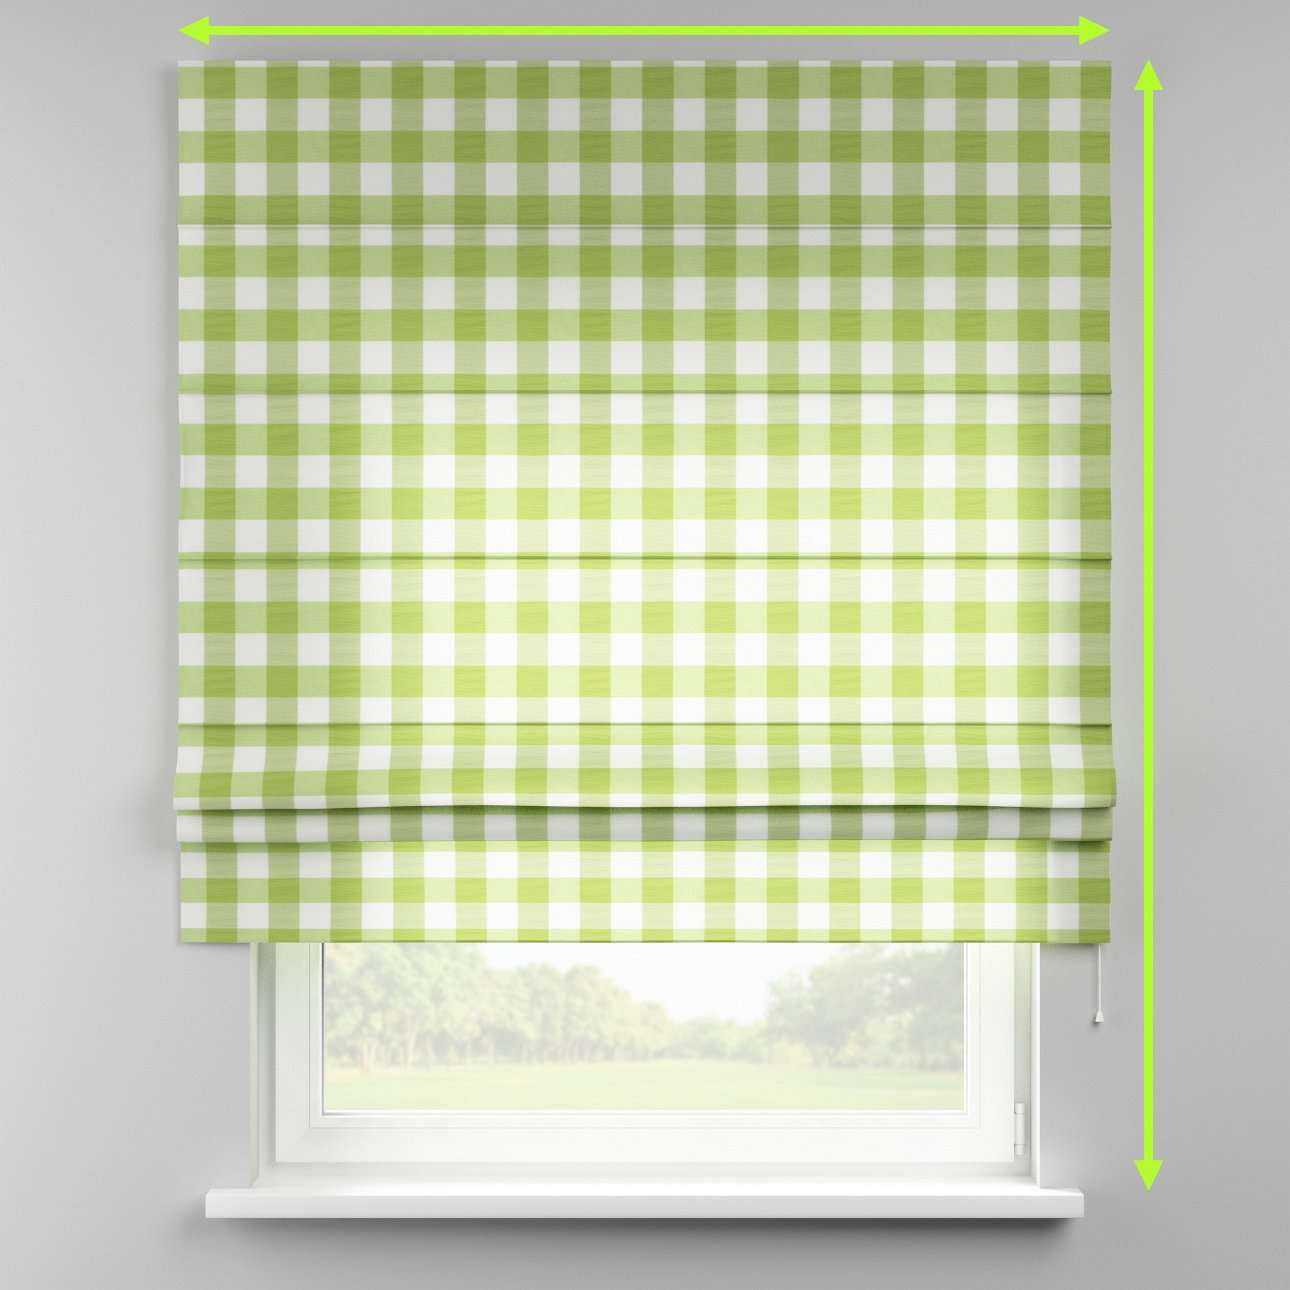 Padva roman blind  in collection Quadro, fabric: 136-36